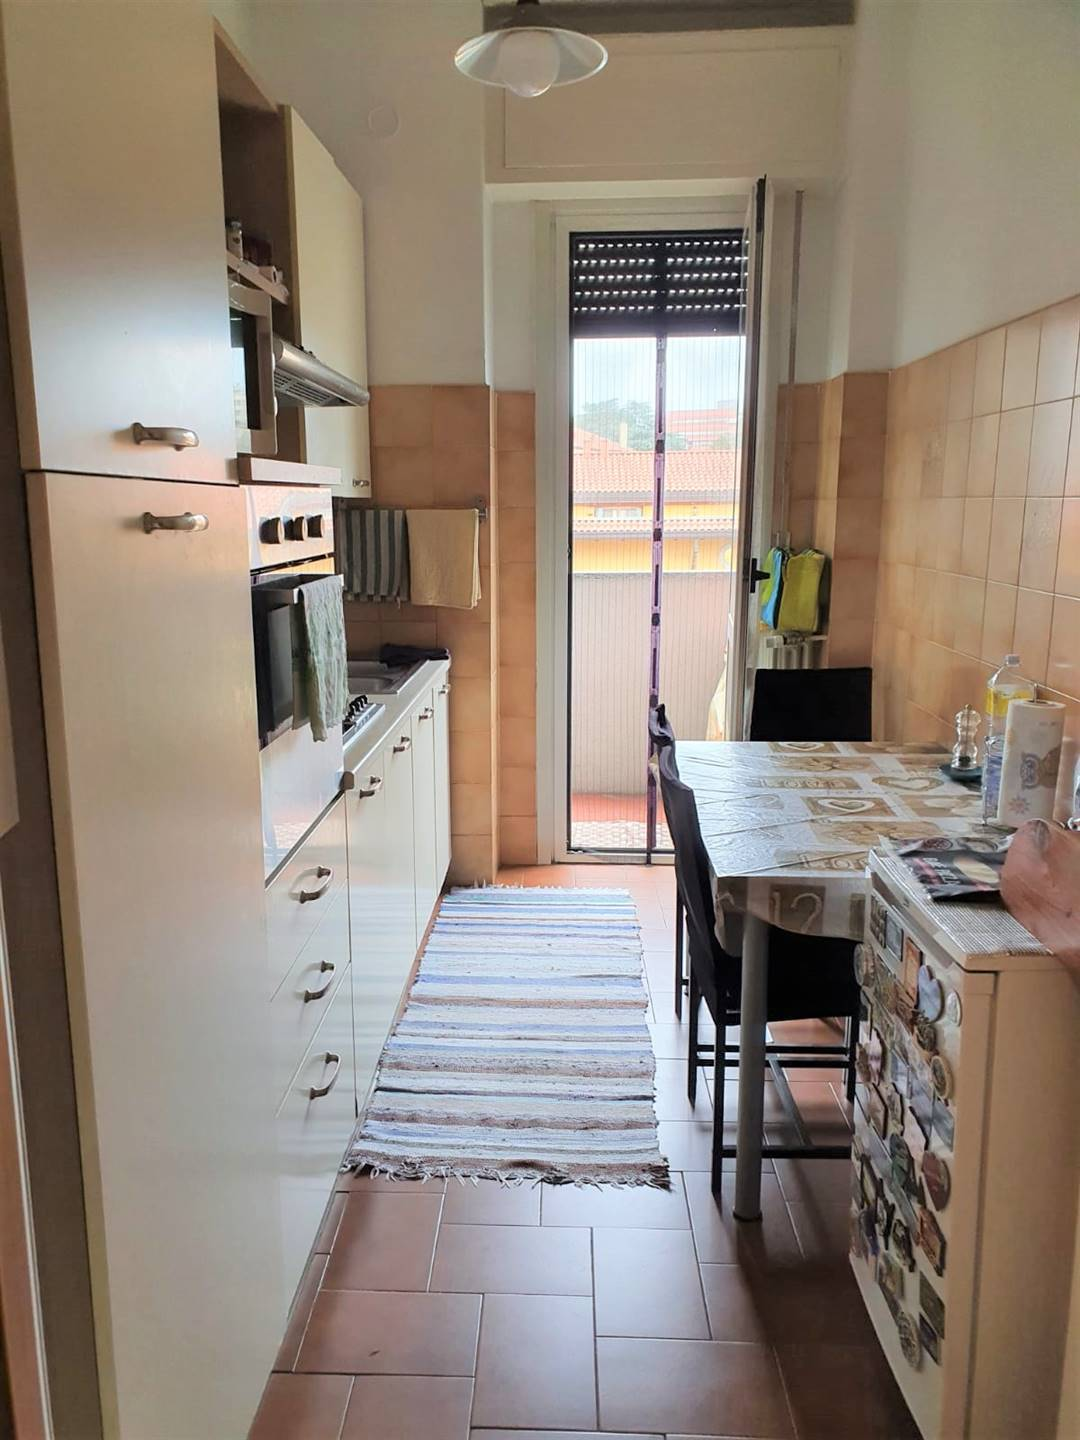 SESTO SAN GIOVANNI, Apartment for sale, Good condition, Heating Centralized, Energetic class: G, Epi: 175 kwh/m2 year, placed at 2° on 6, composed